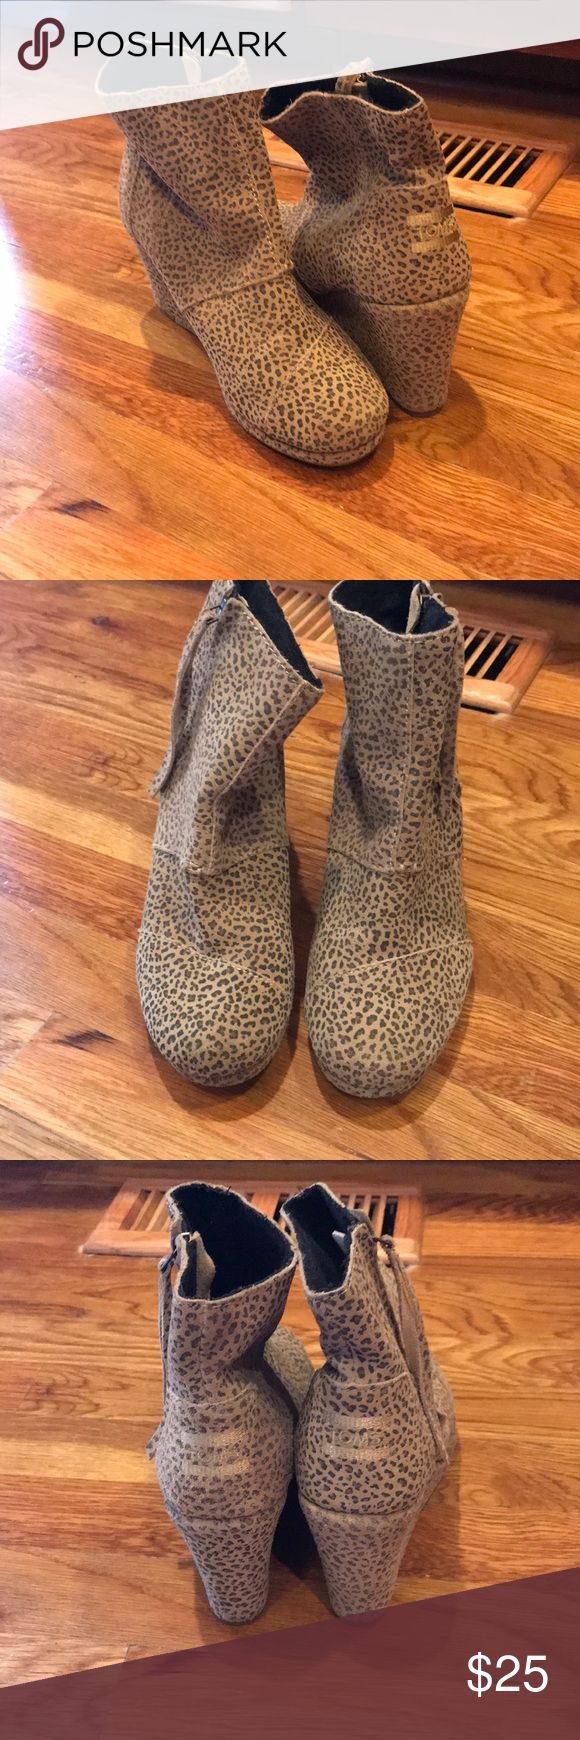 TOMS Wedge shoes TOMS Wedge Booties in cheetah print size 7. GUC Toms Shoes Ankle Boots & Booties